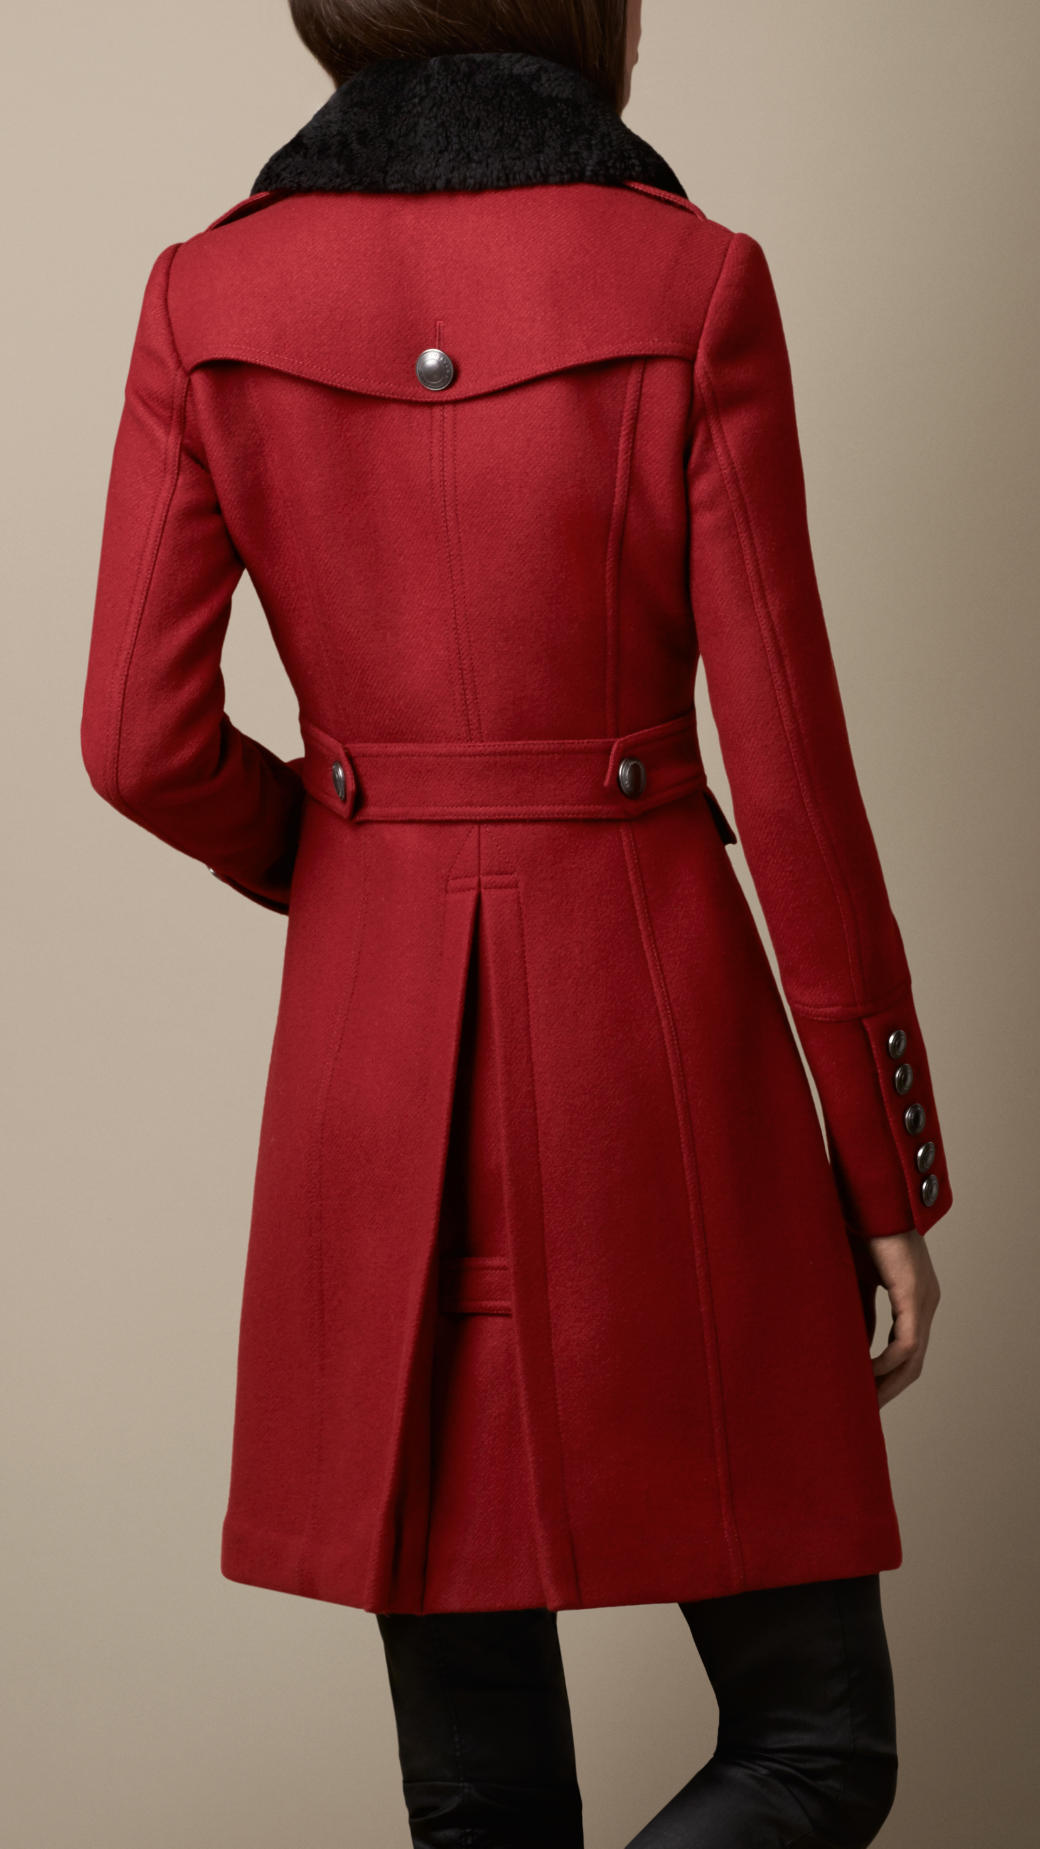 Burberry Shearling Collar Military Coat in Red | Lyst